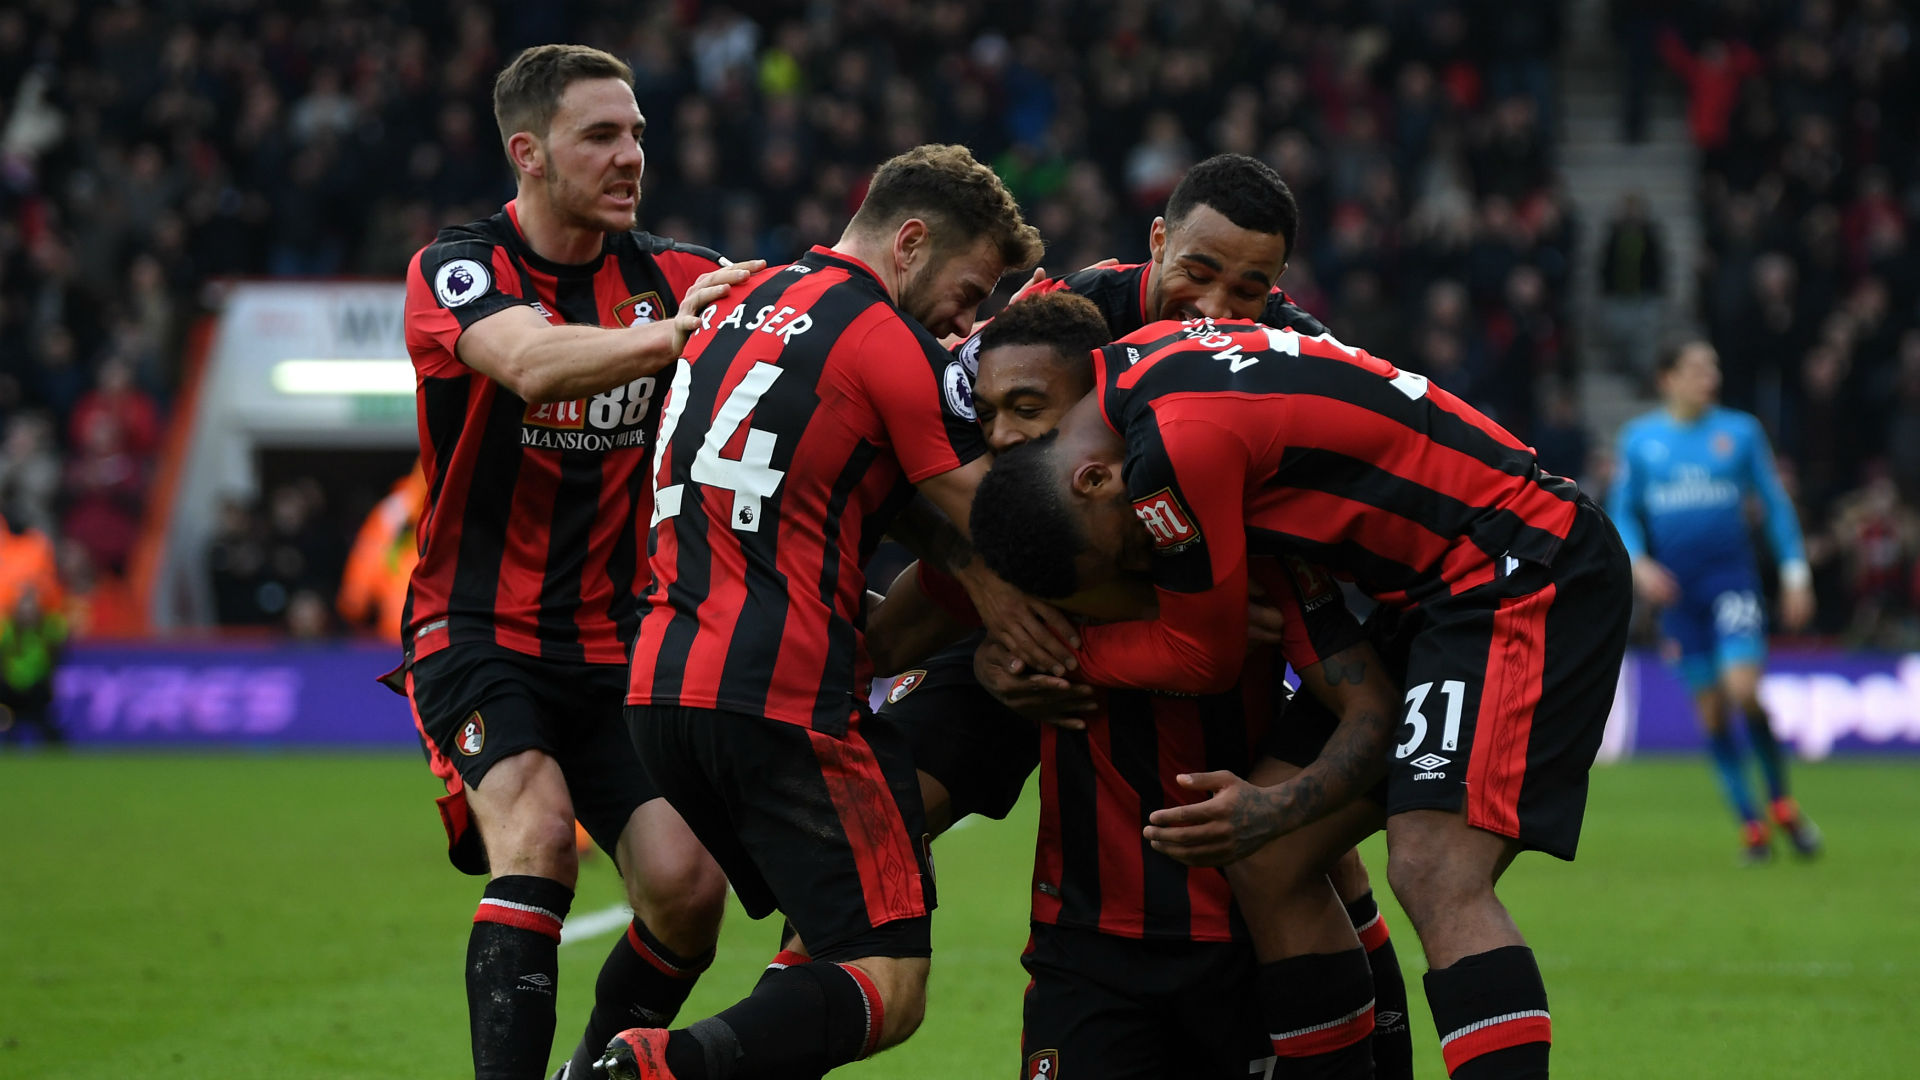 Bournemouth Fight Back to Shock Arsenal in the Premier League on Sunday